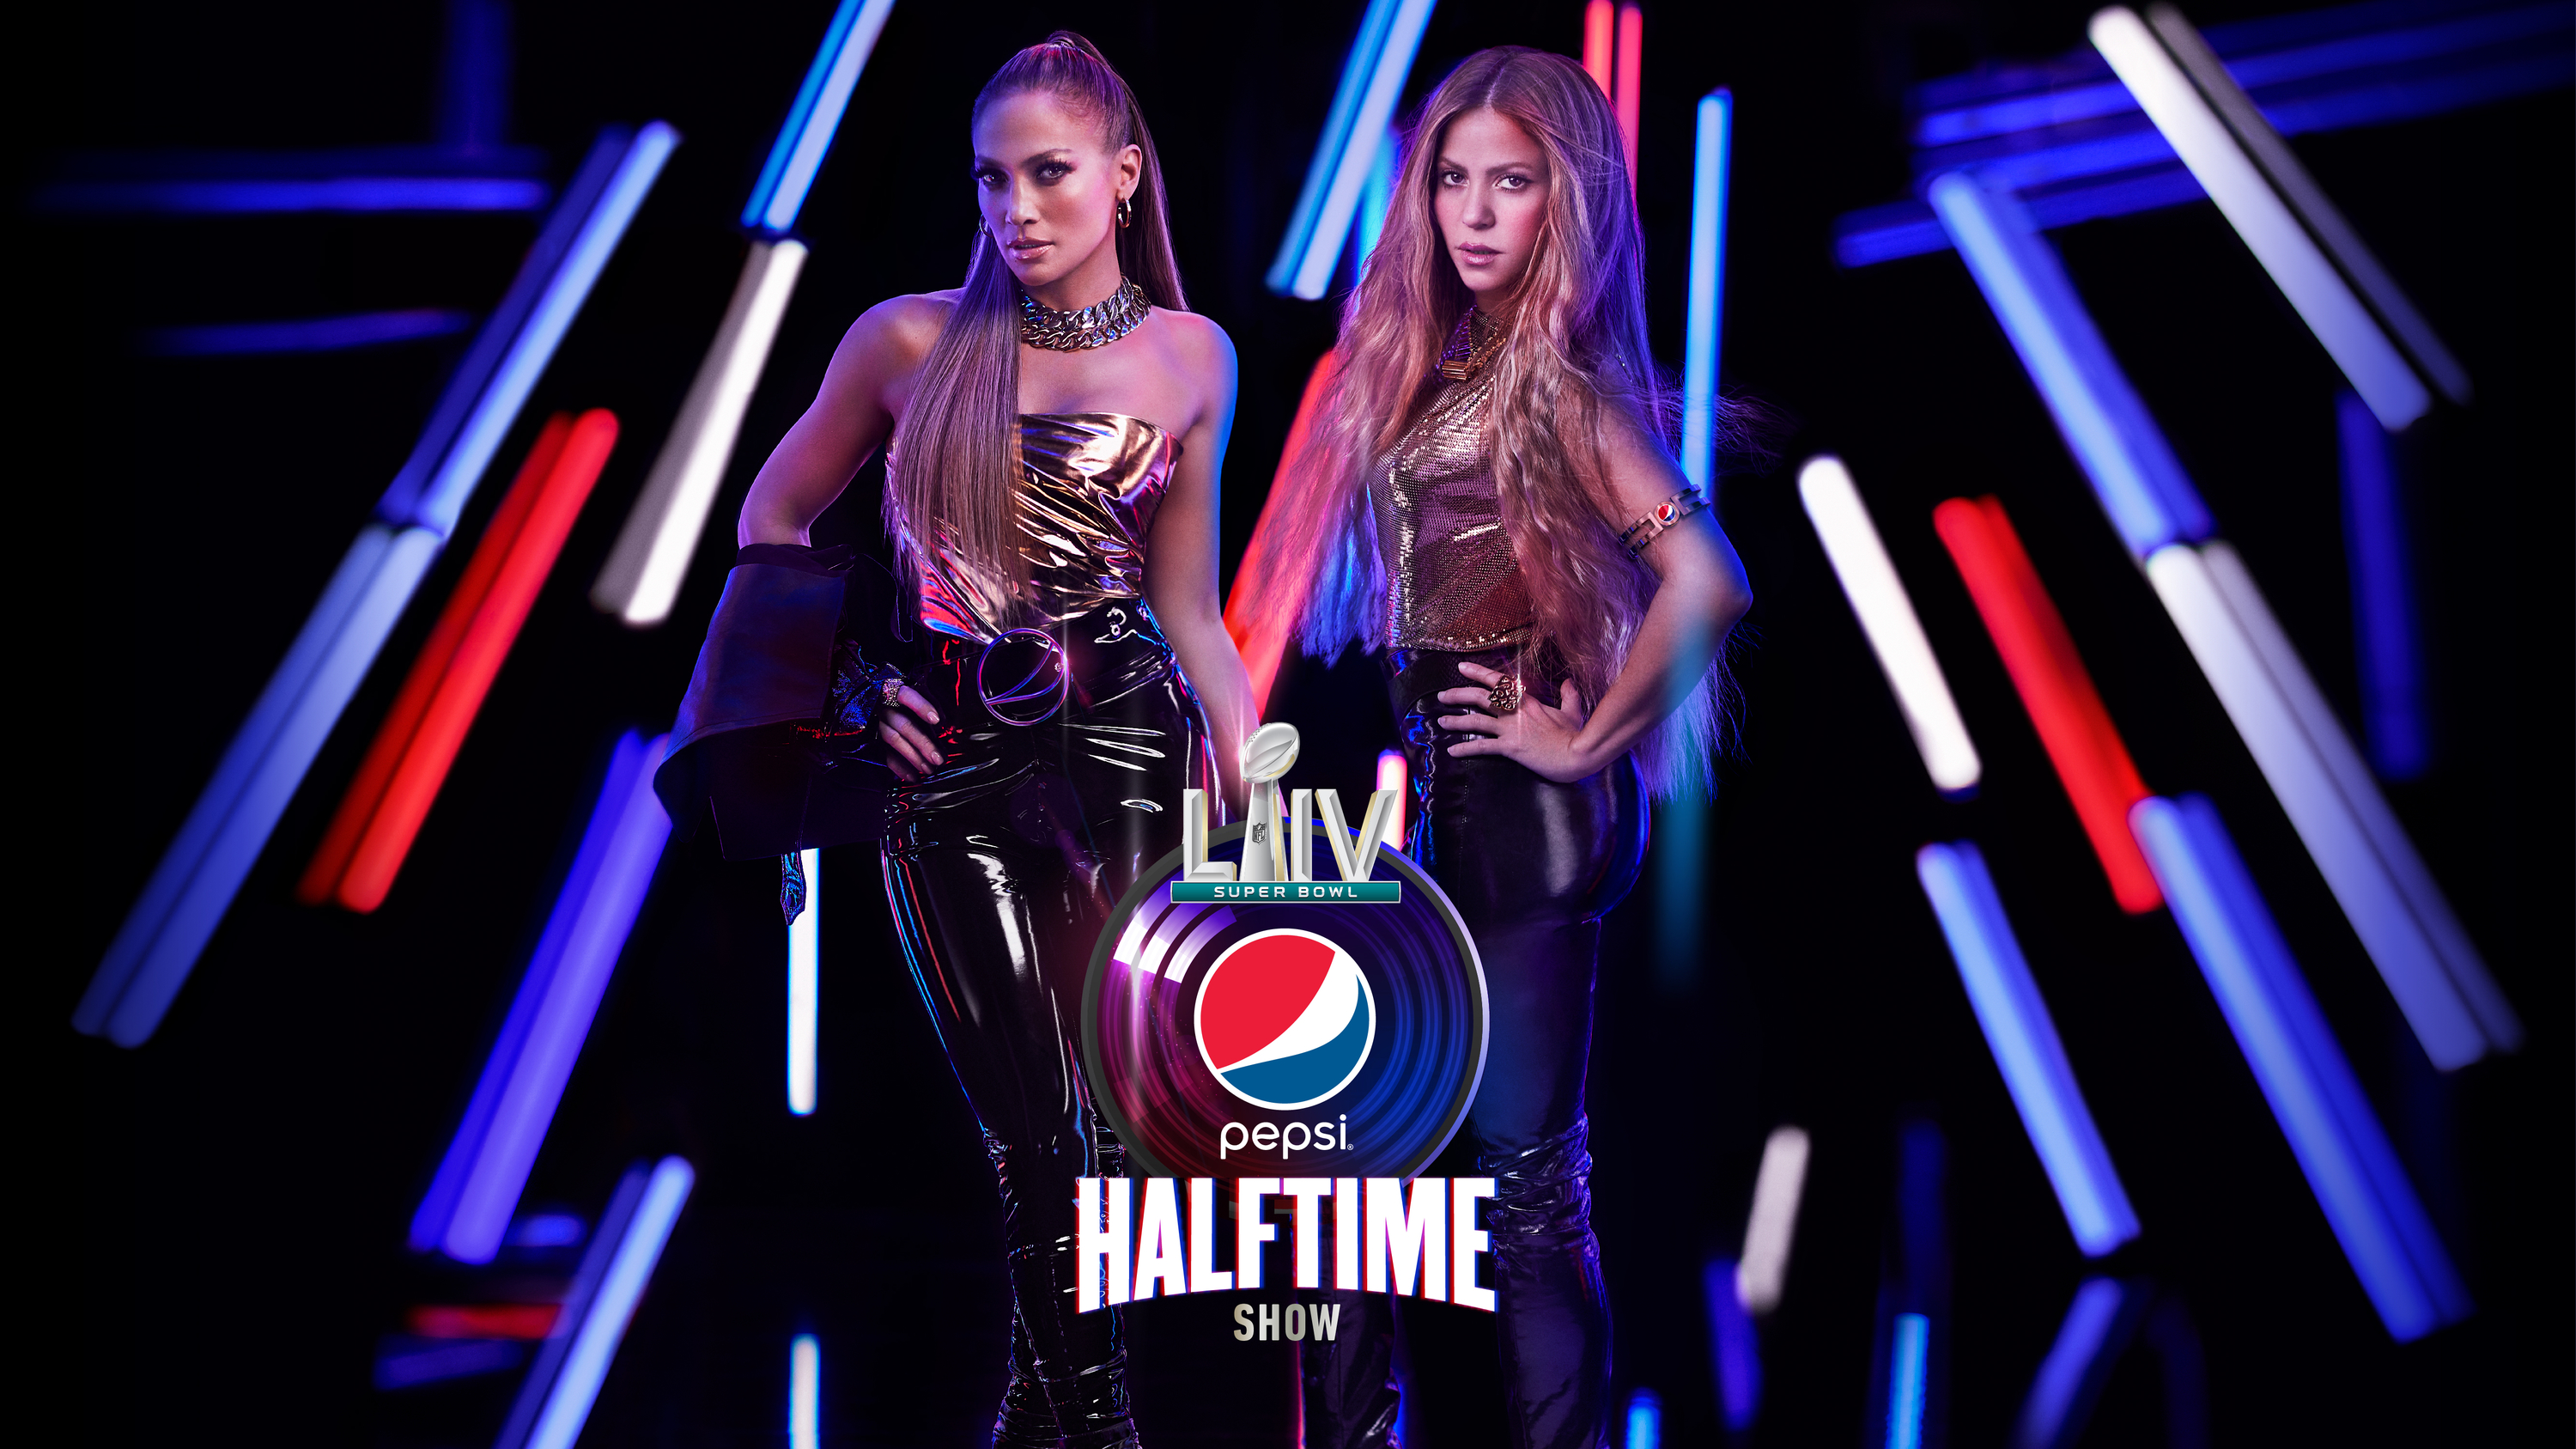 Shakira and Jennifer Lopez at Pepsi's Super Bowl halftime show: Wake-Up Call